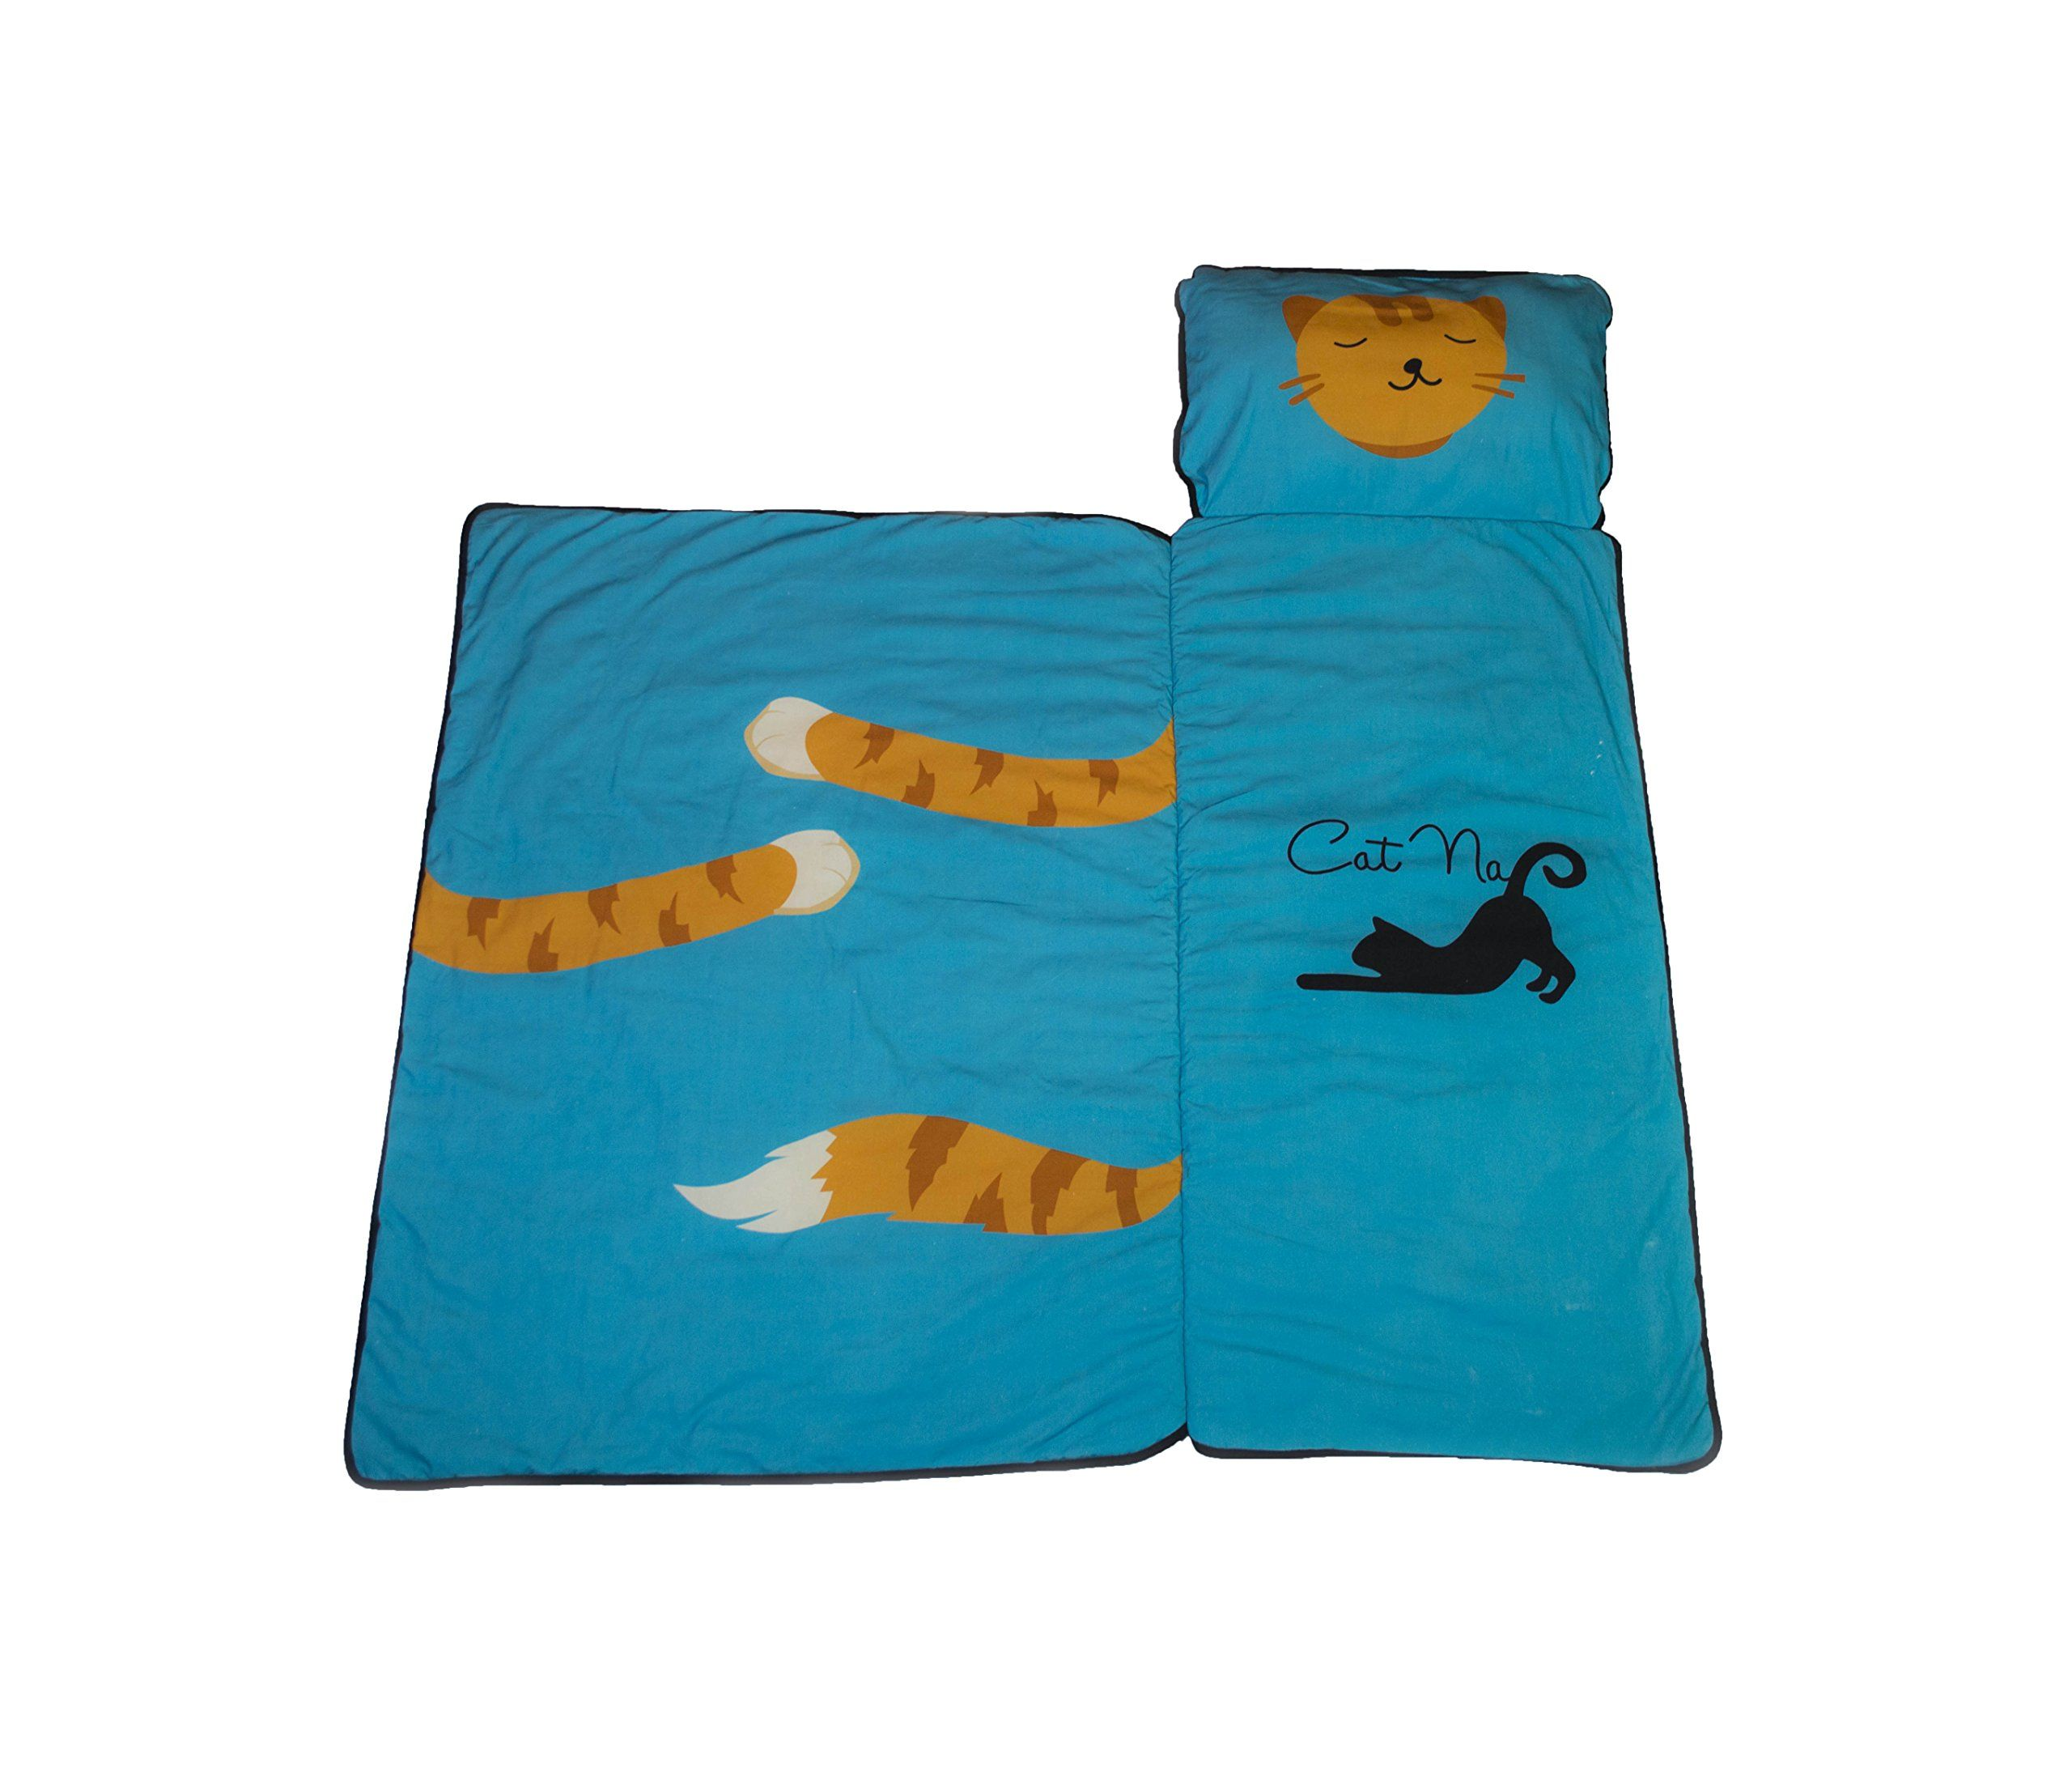 Cat Nap Mat For Toddlers Indoor Outdoor Mat Ocean Blue Built In Blanket For Babies And Toddlers Want To Know More Click On Th Cat Bed Cat Nap Cat Clothes